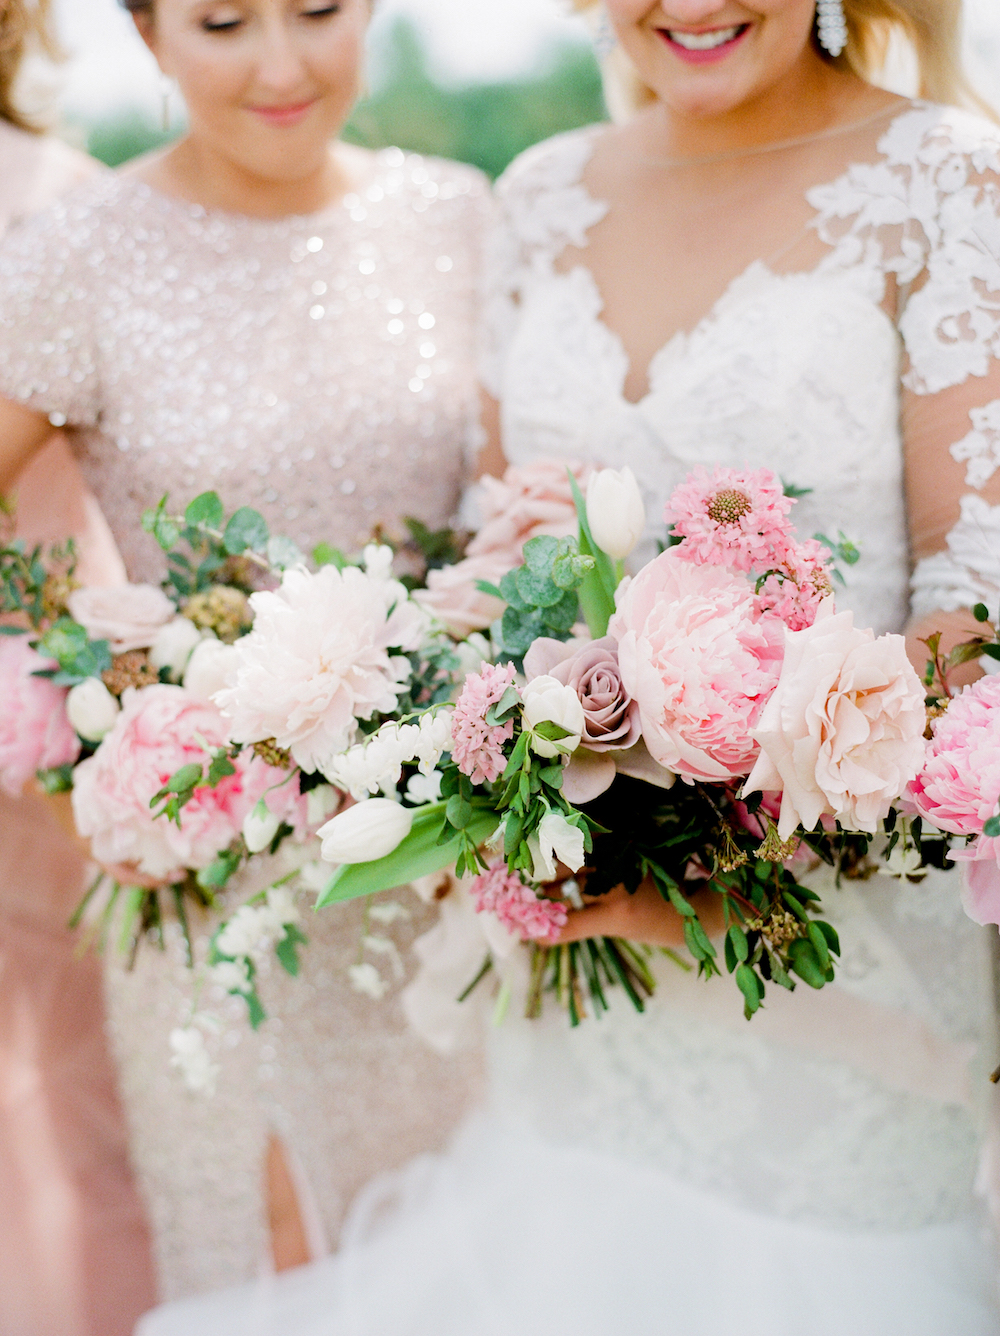 Romantic Wedding Flowers - Wedding Florists in Winnipeg